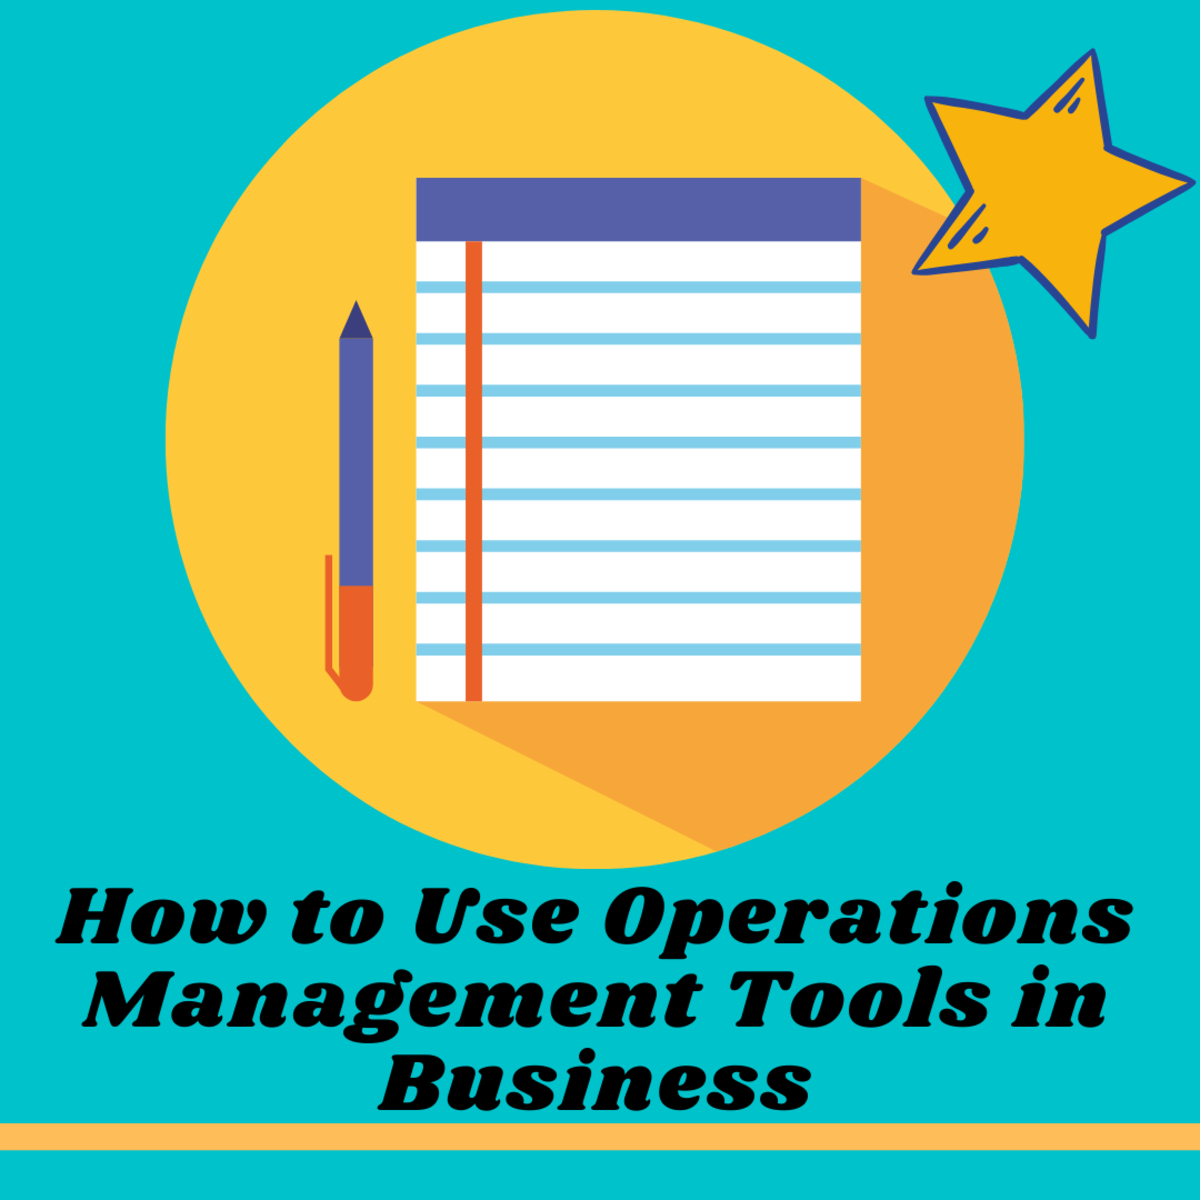 If you know how to use operations management tools, you'll become better at business. See what they can do for you.